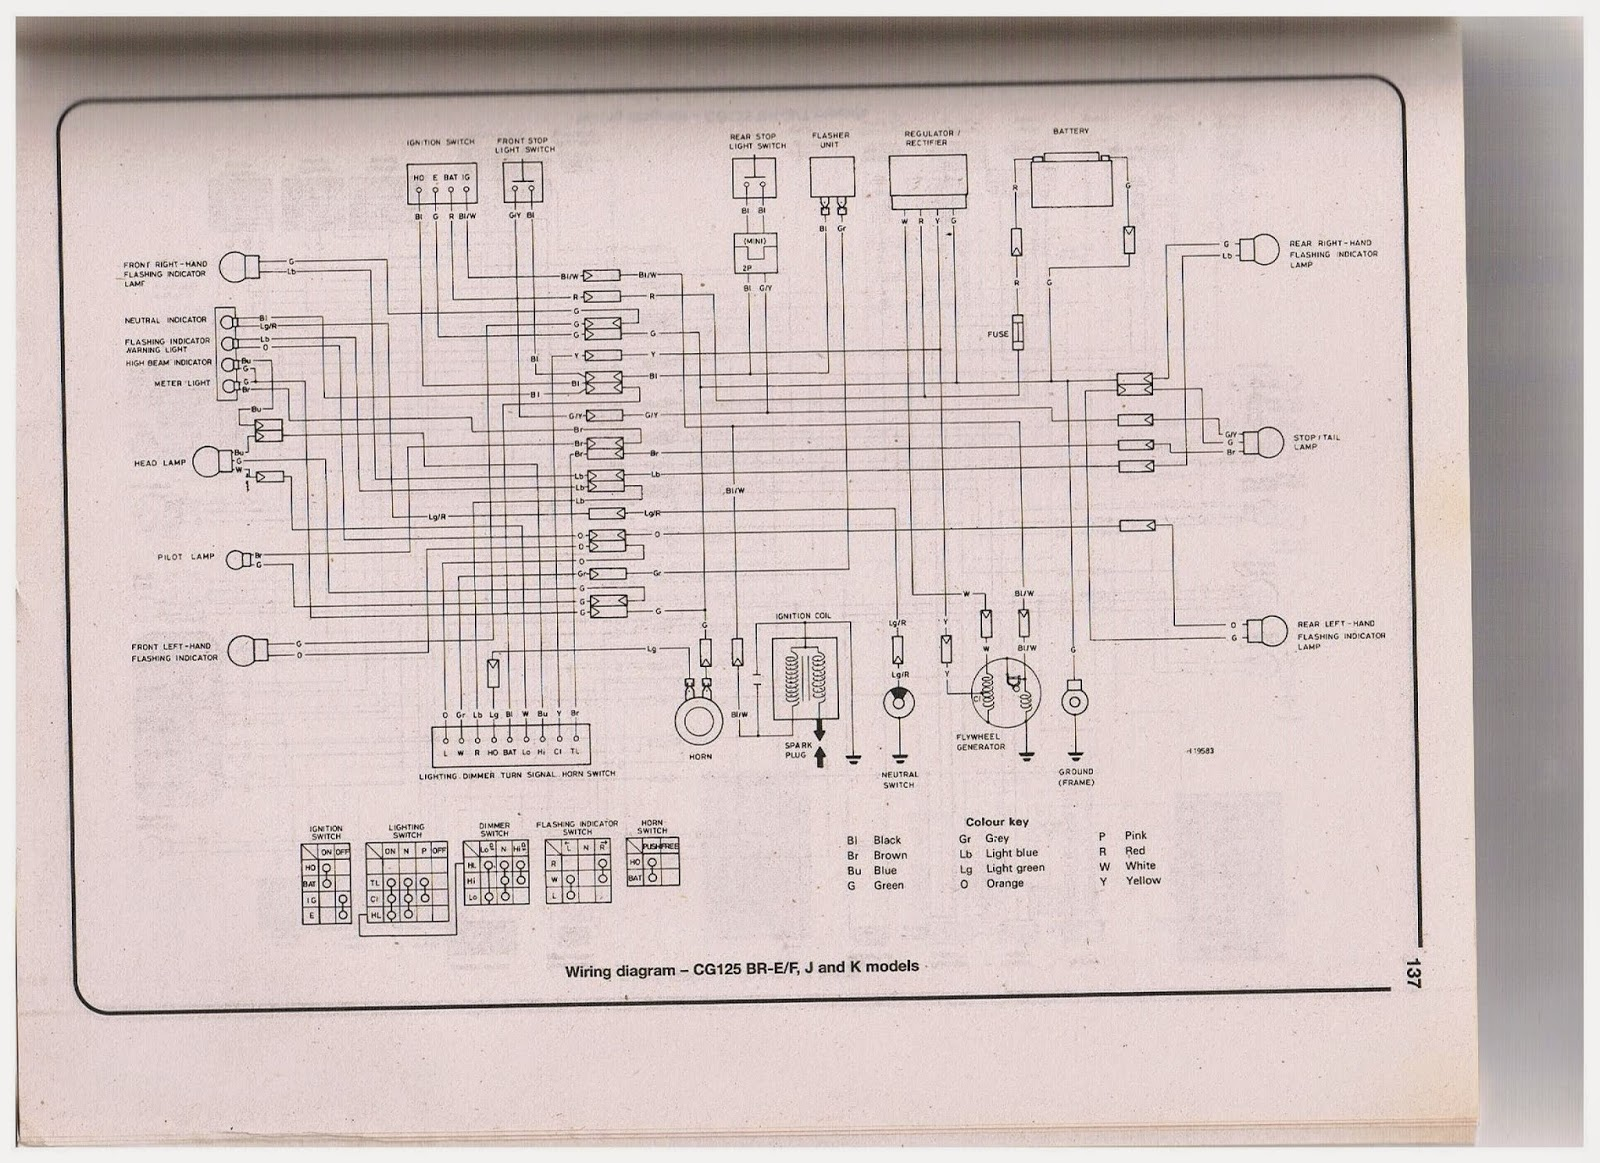 honda cg 125 owner blog honda cg 125 wiring diagrams and honda cg125 br s t models wiring diagrams